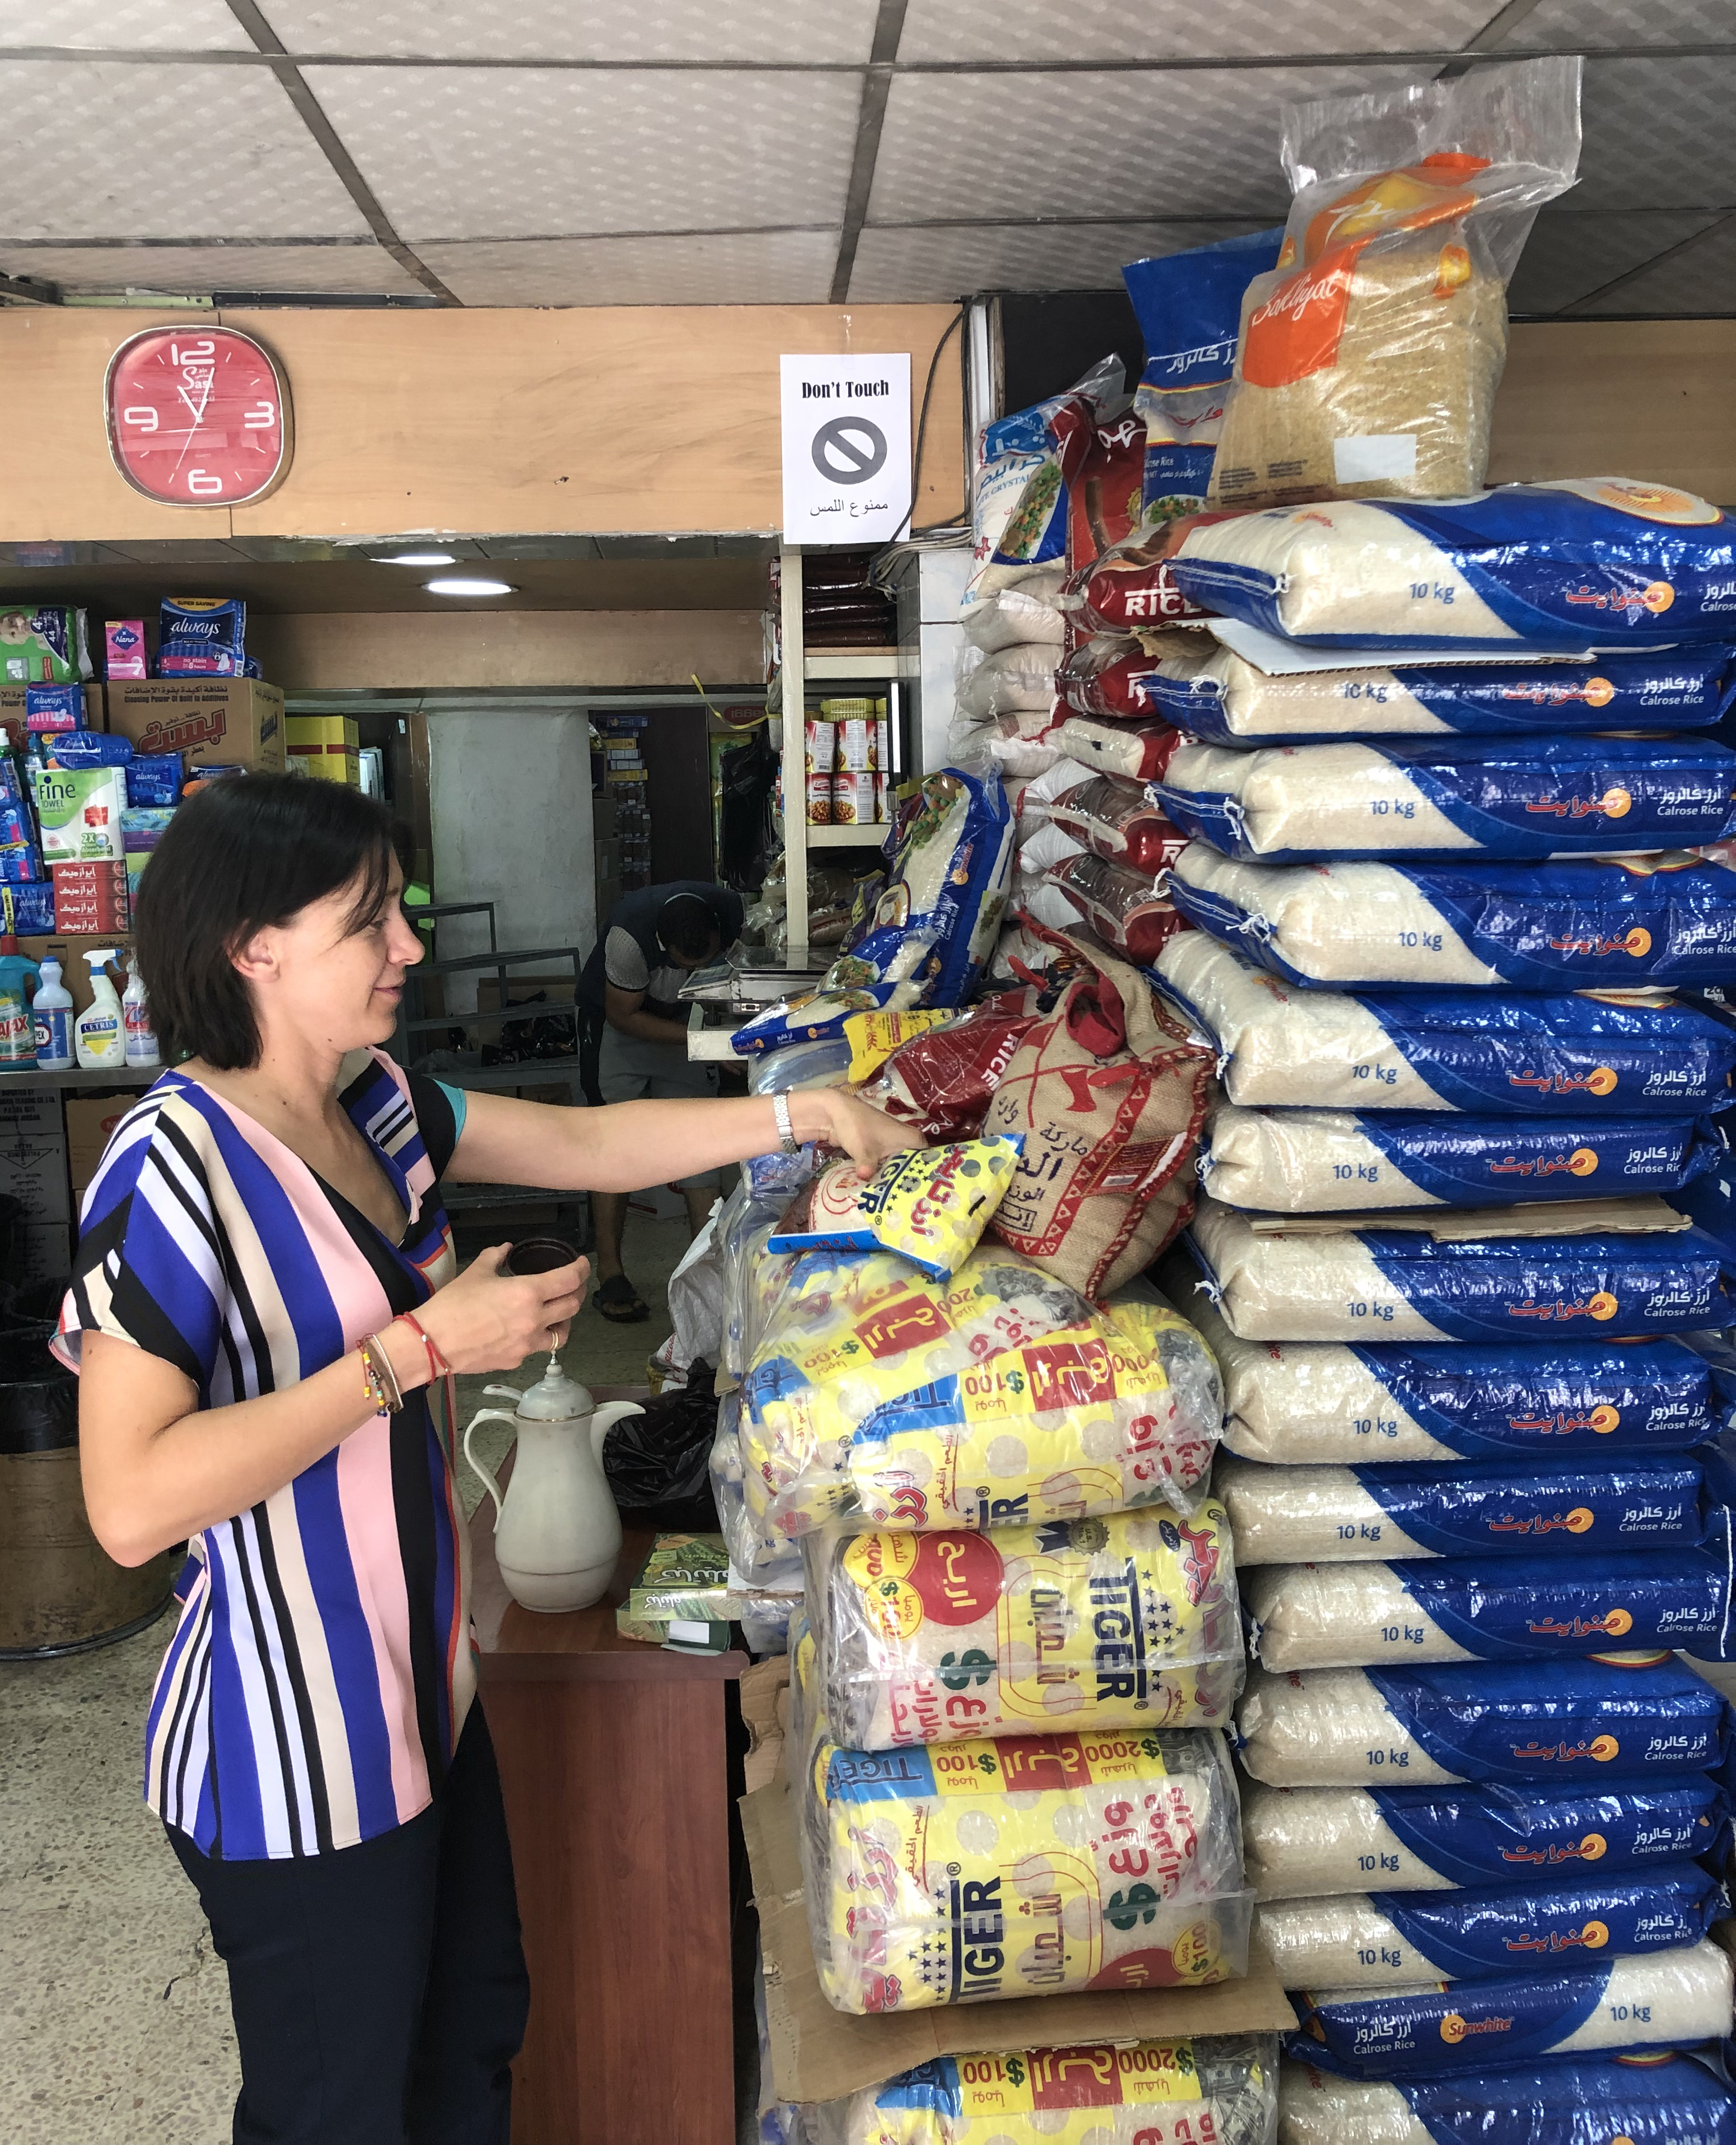 Woman wearing brightly striped shirt inspects rice brands in plastic bags, piled up to the ceiling